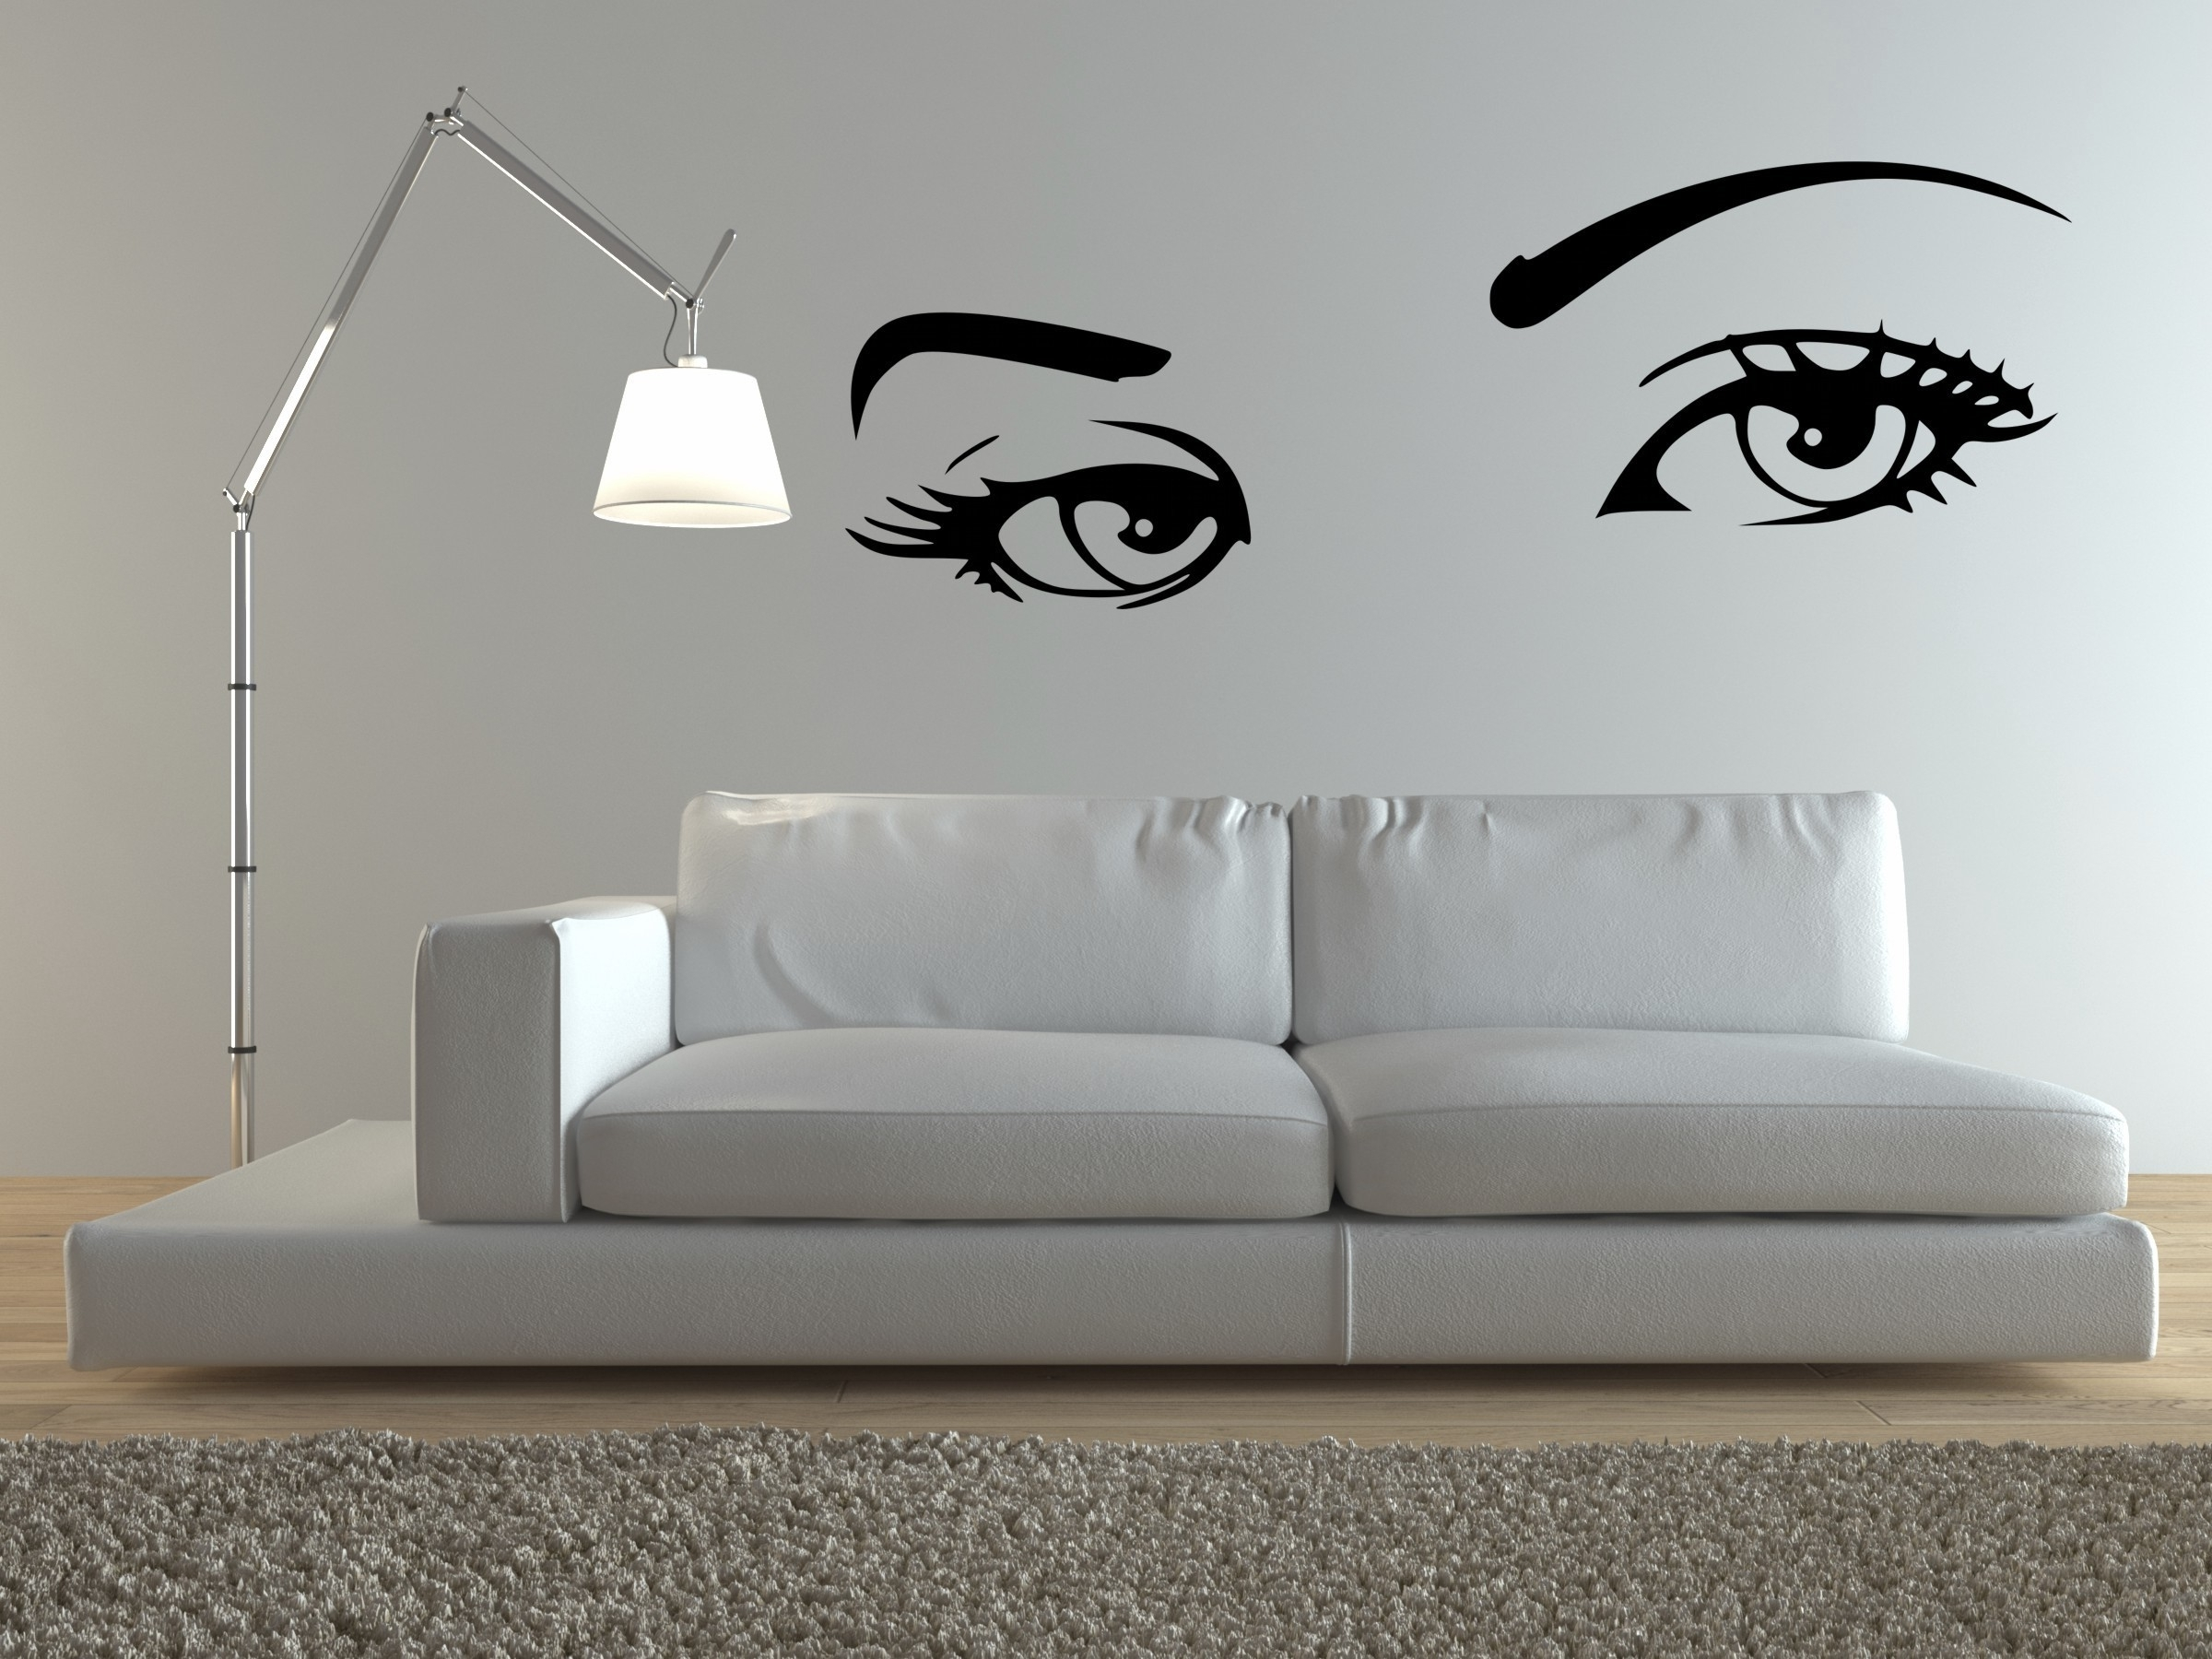 Custom Wall Stickers | Wall Of Photos | Pinterest | Wall Sticker Inside Recent Custom Wall Accents (View 7 of 15)